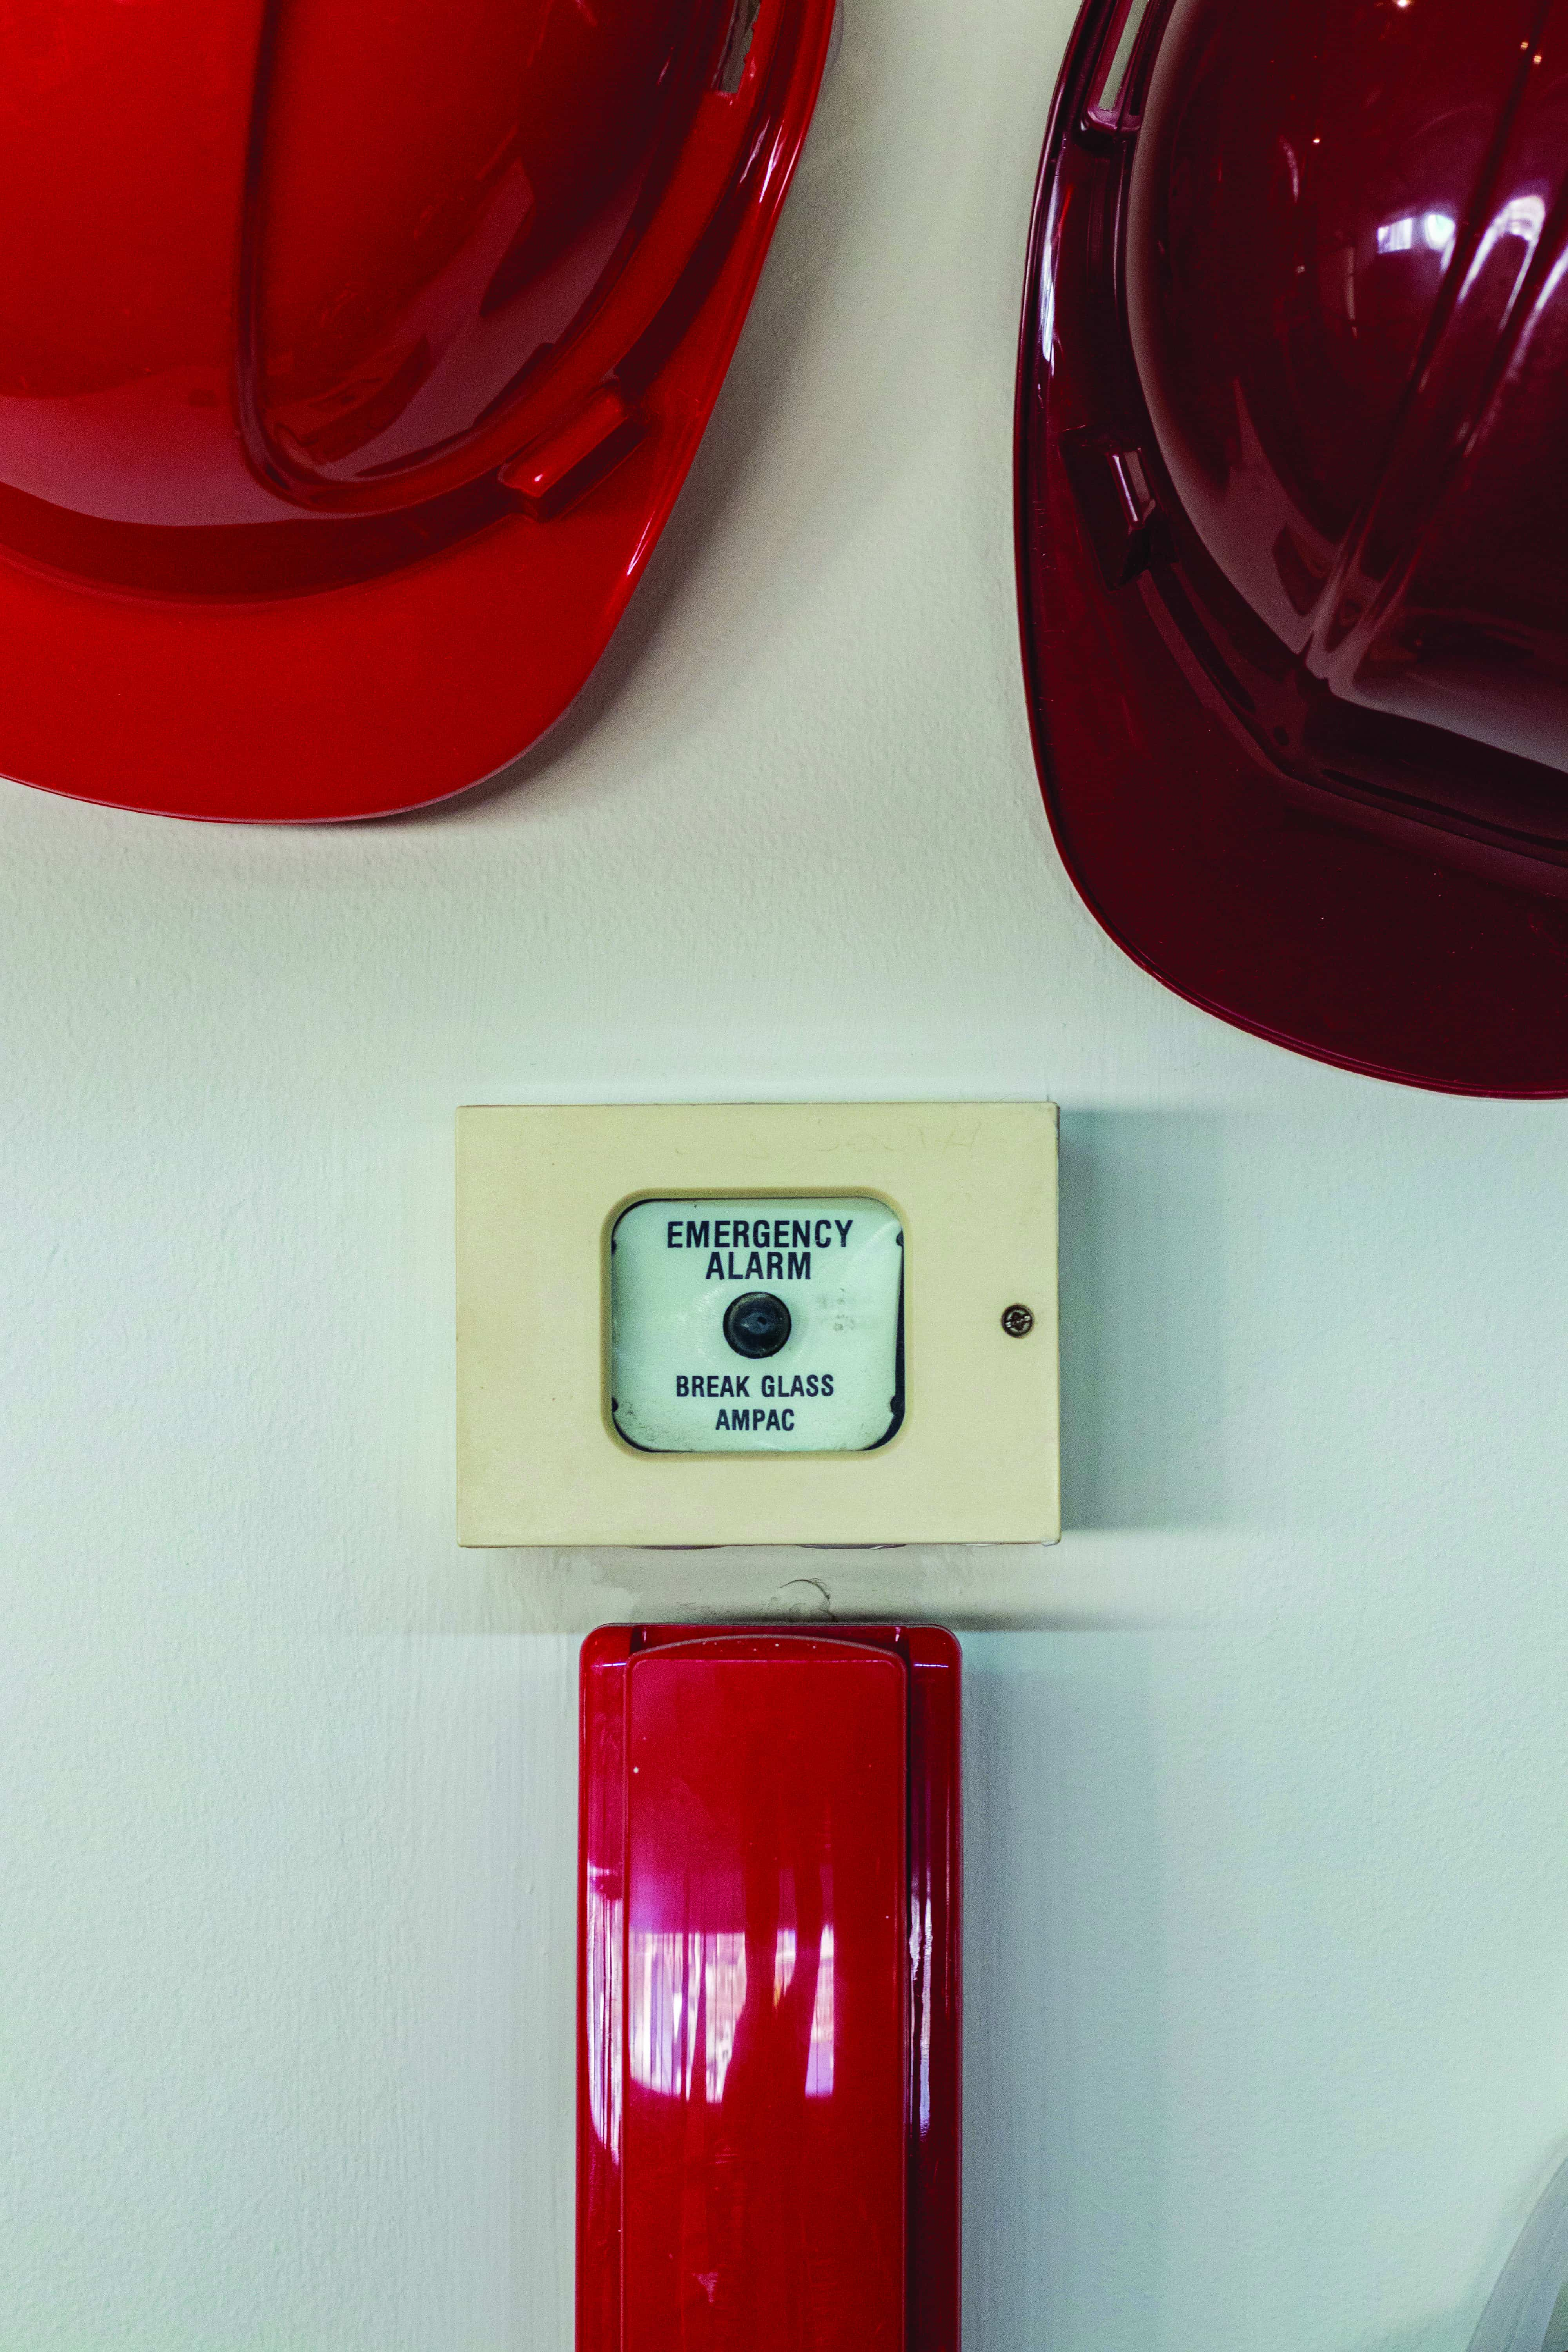 St. Catharines residents reminded to test fire alarms